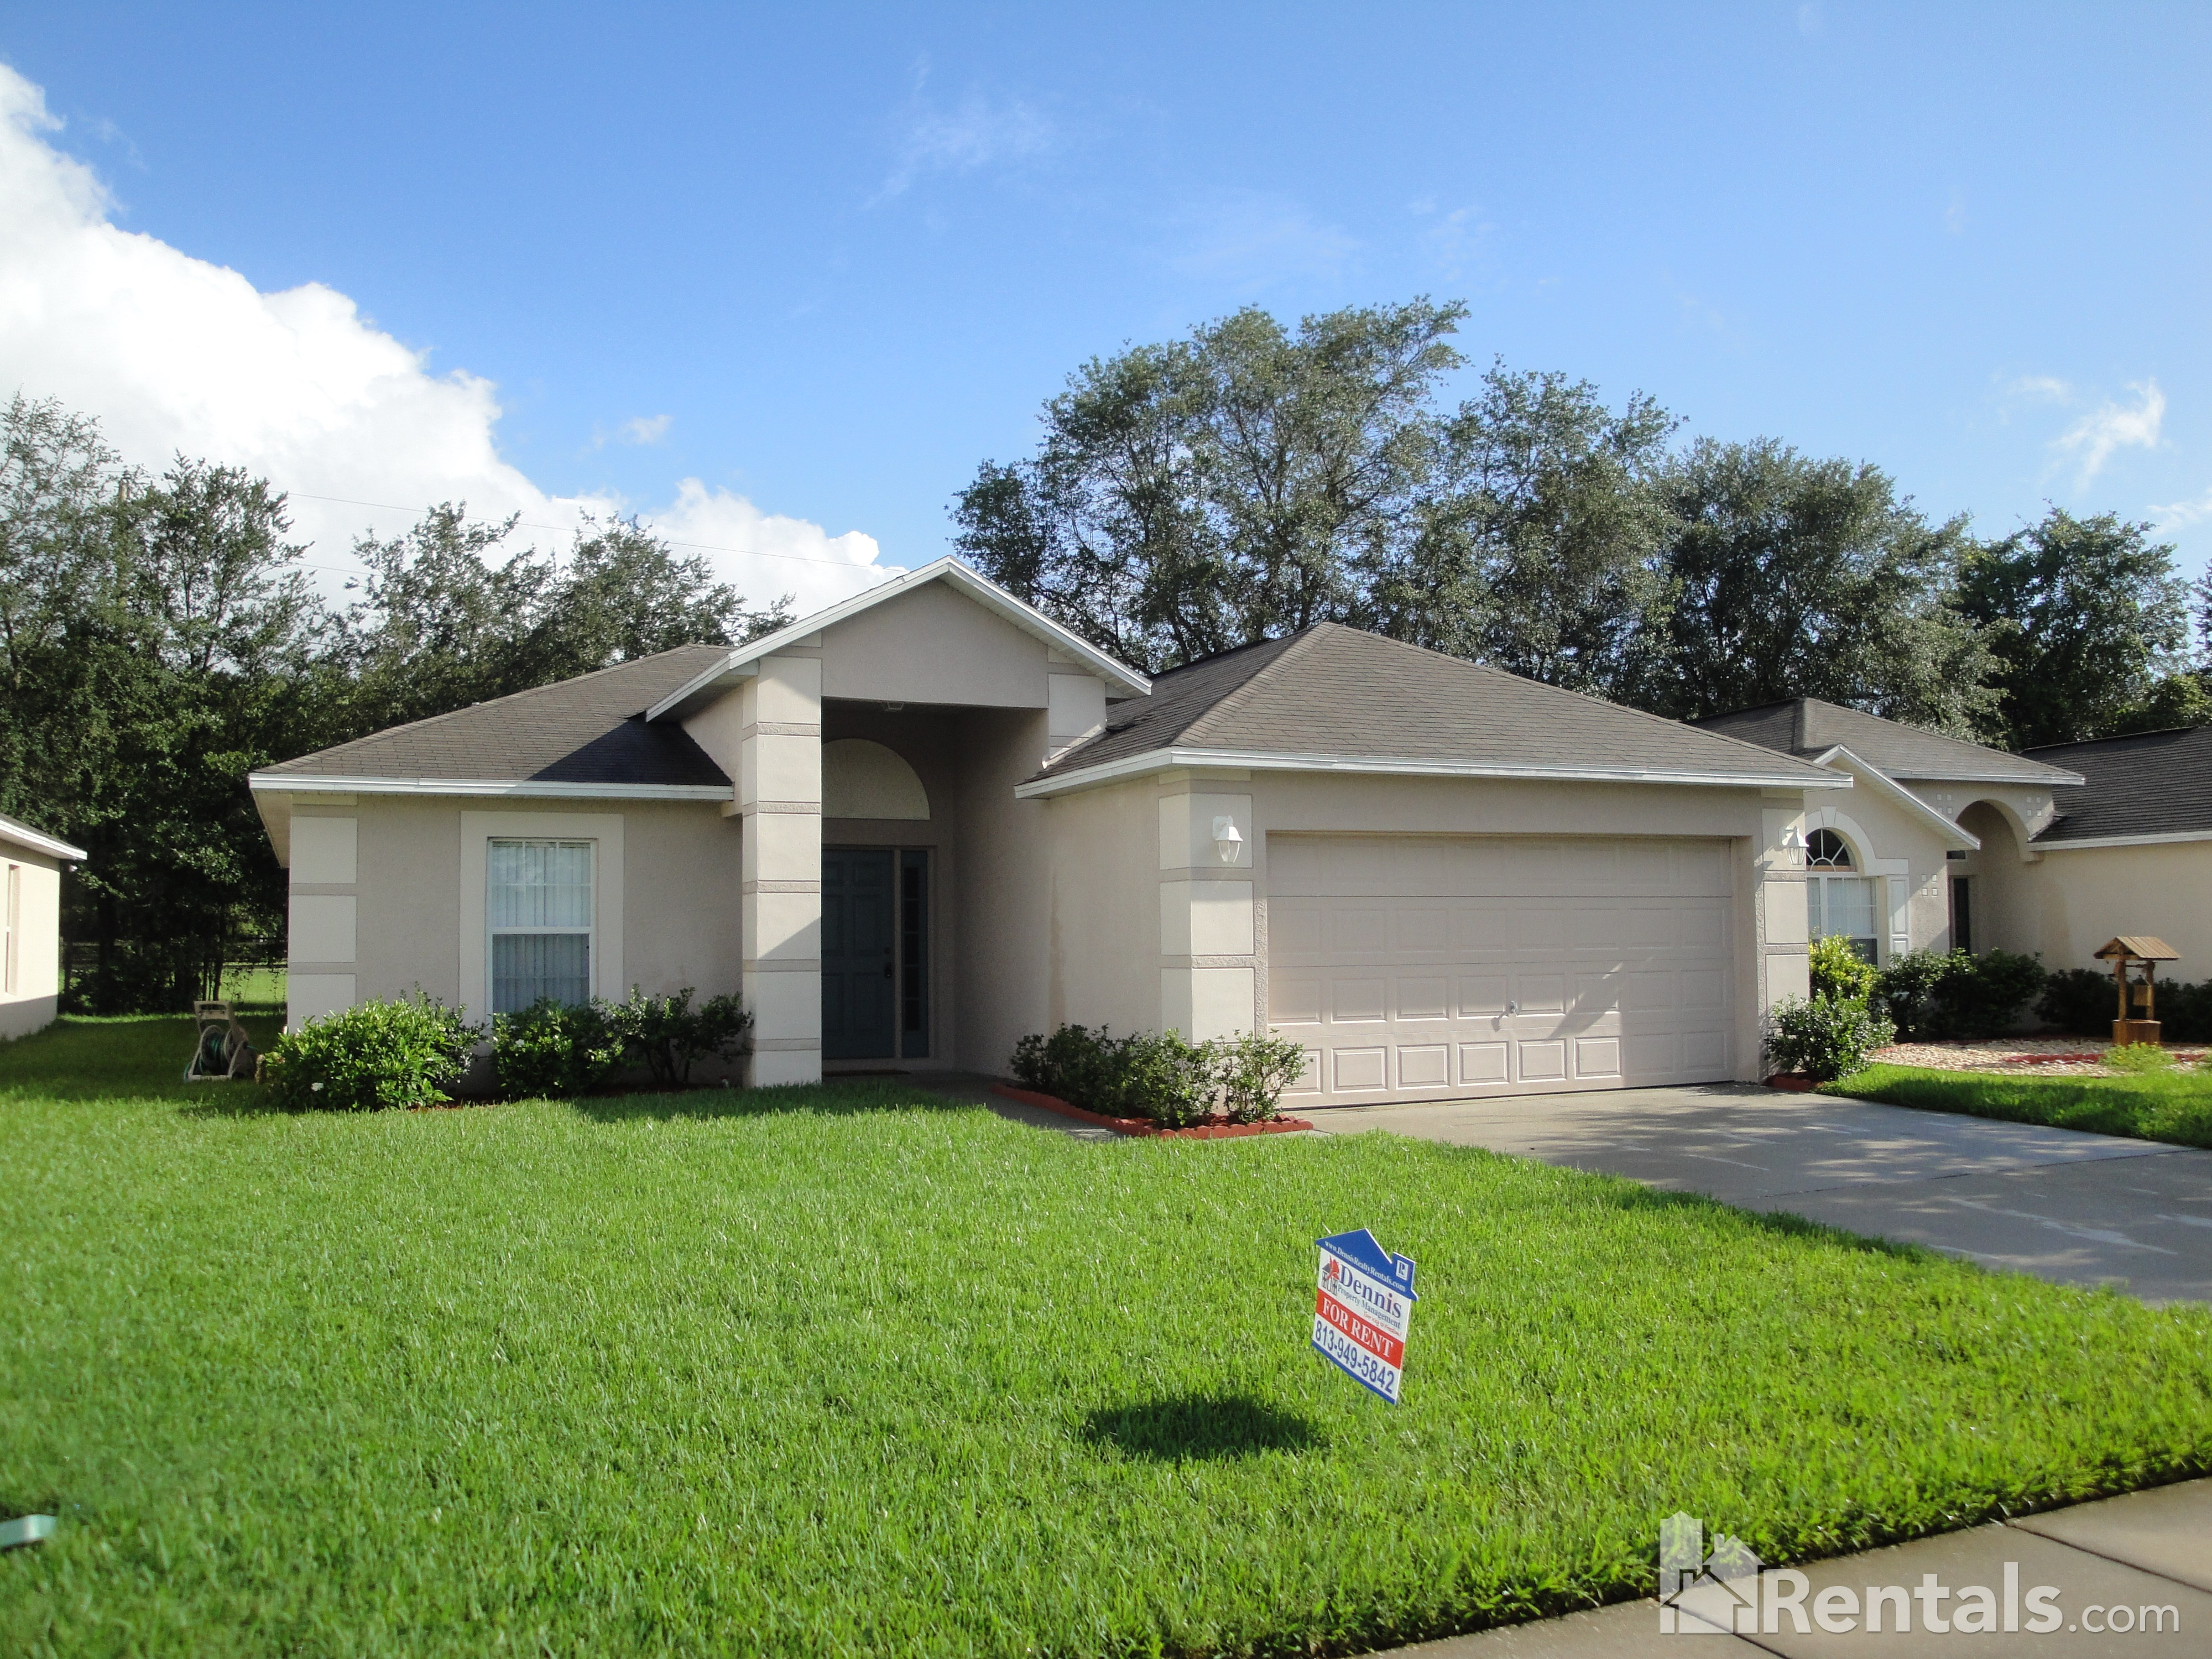 Apartments For Rent Near Wesley Chapel Fl